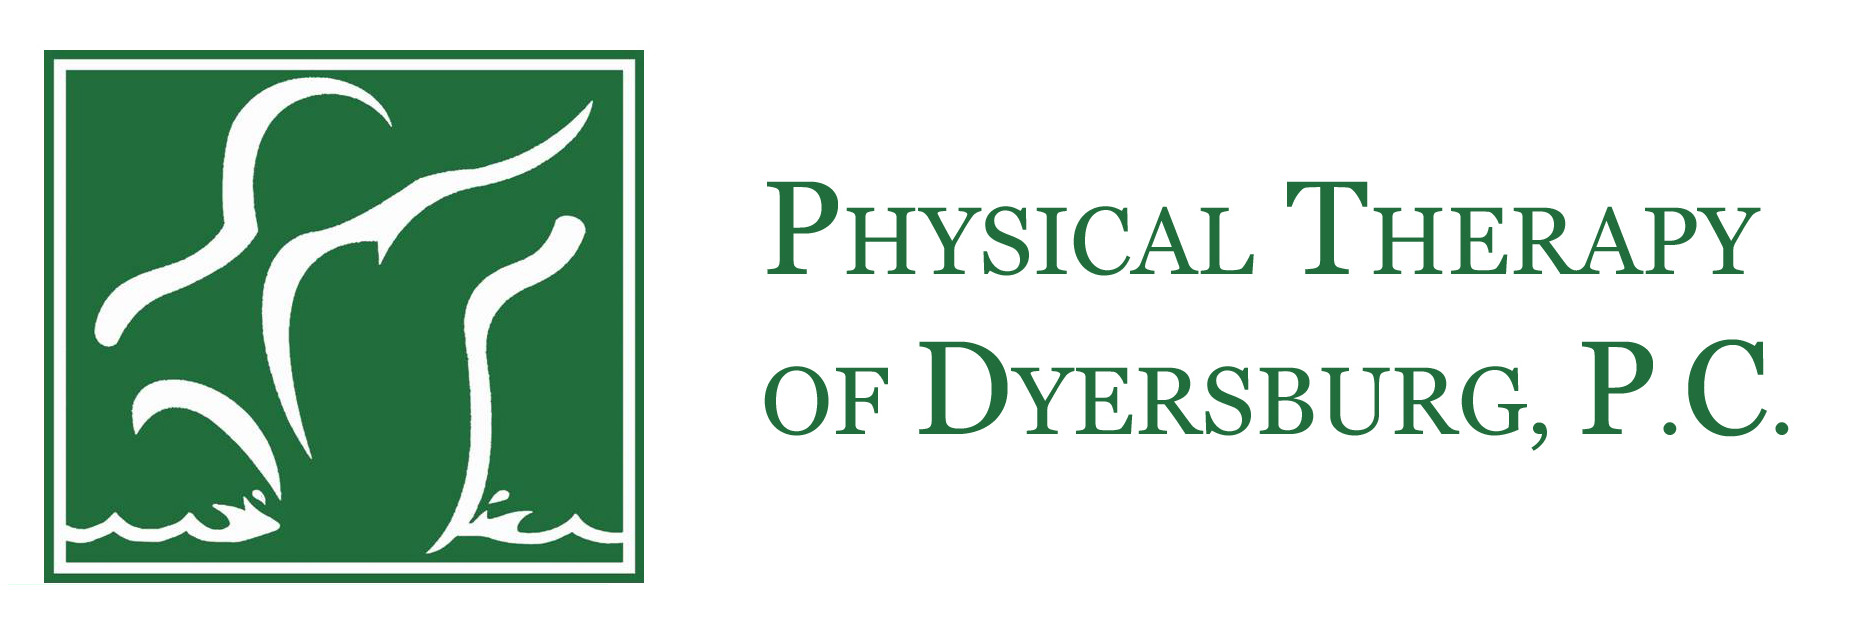 Physical Therapy of Dyersburg